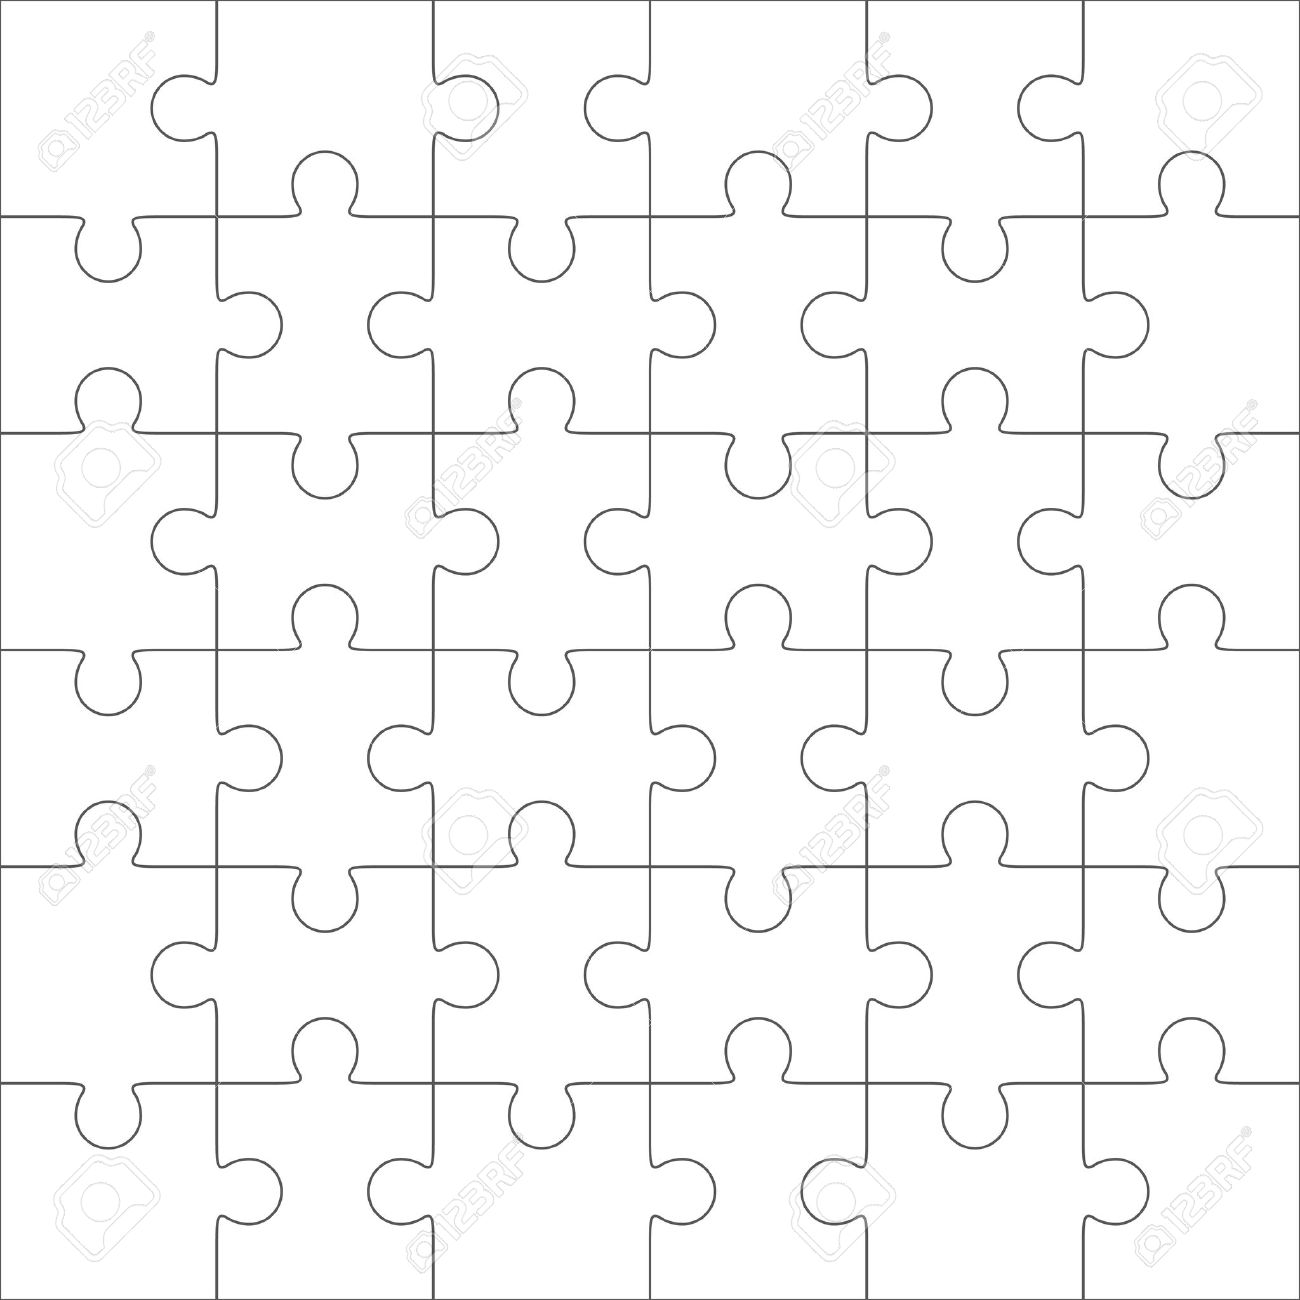 Jigsaw Puzzle Vector Blank Simple Template 36 Pieces Stock